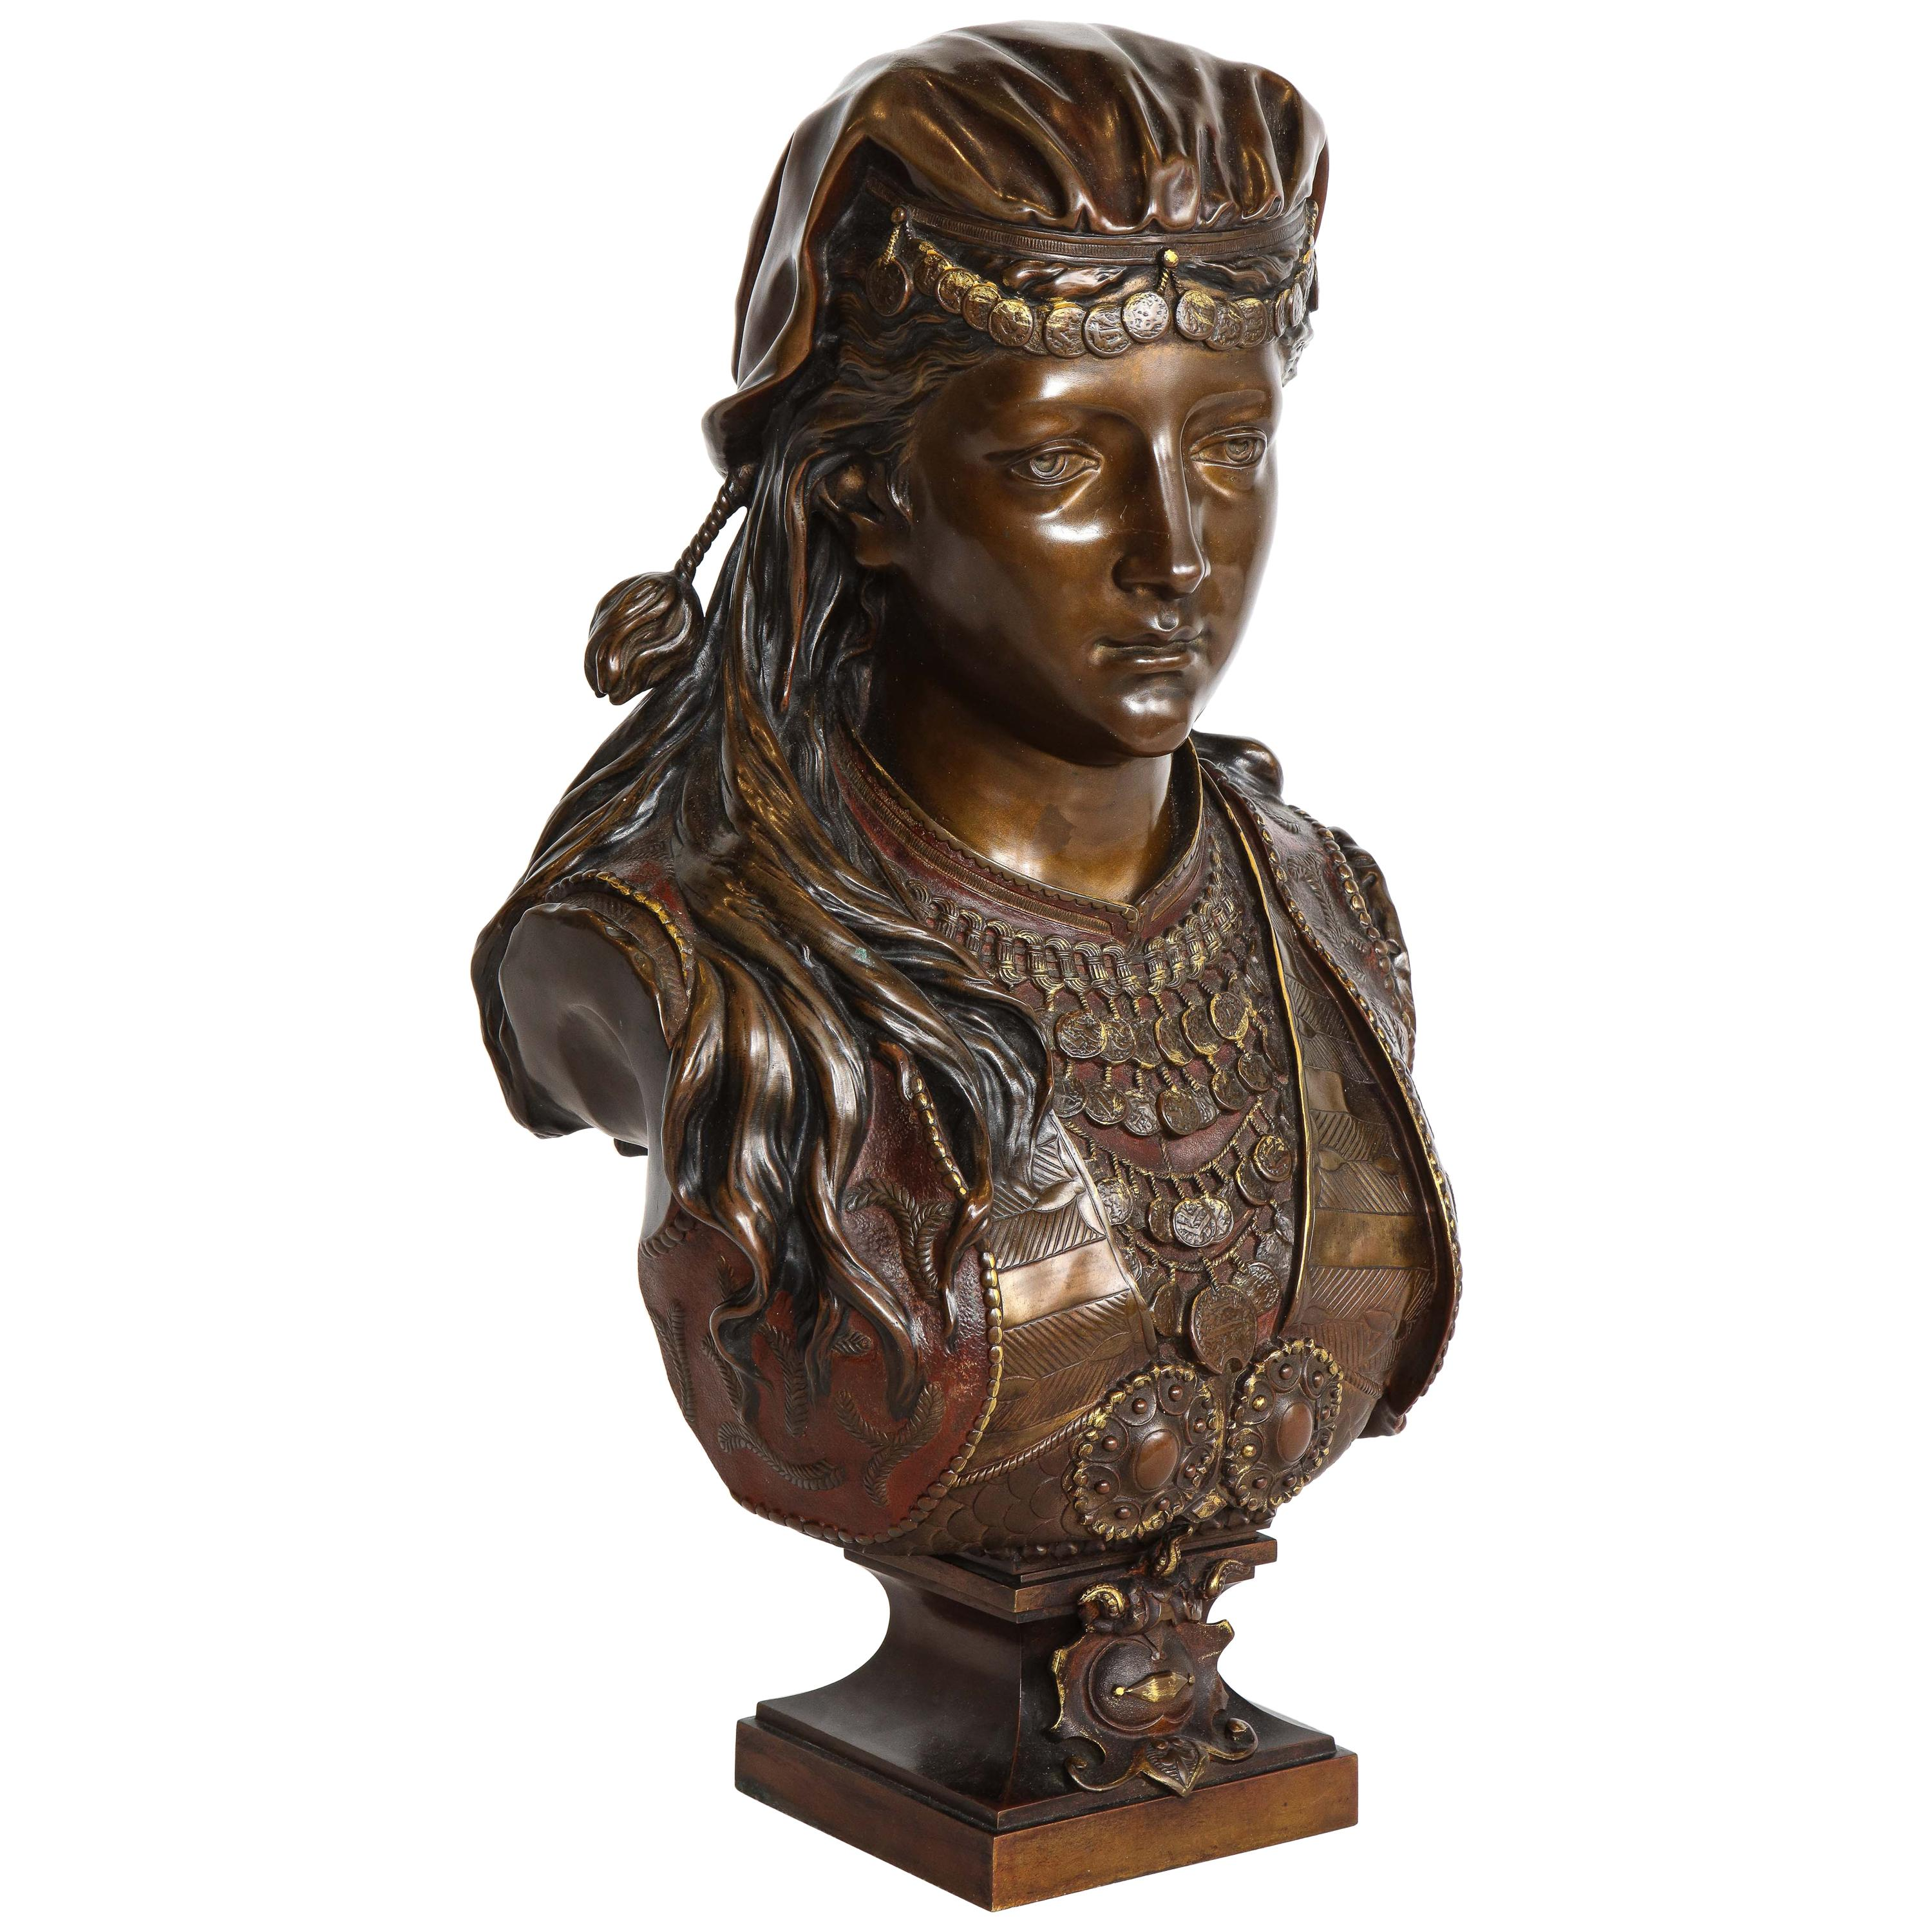 Exquisite French Multi-Patinated Orientalist Bronze Bust of Beauty, by Rimbez